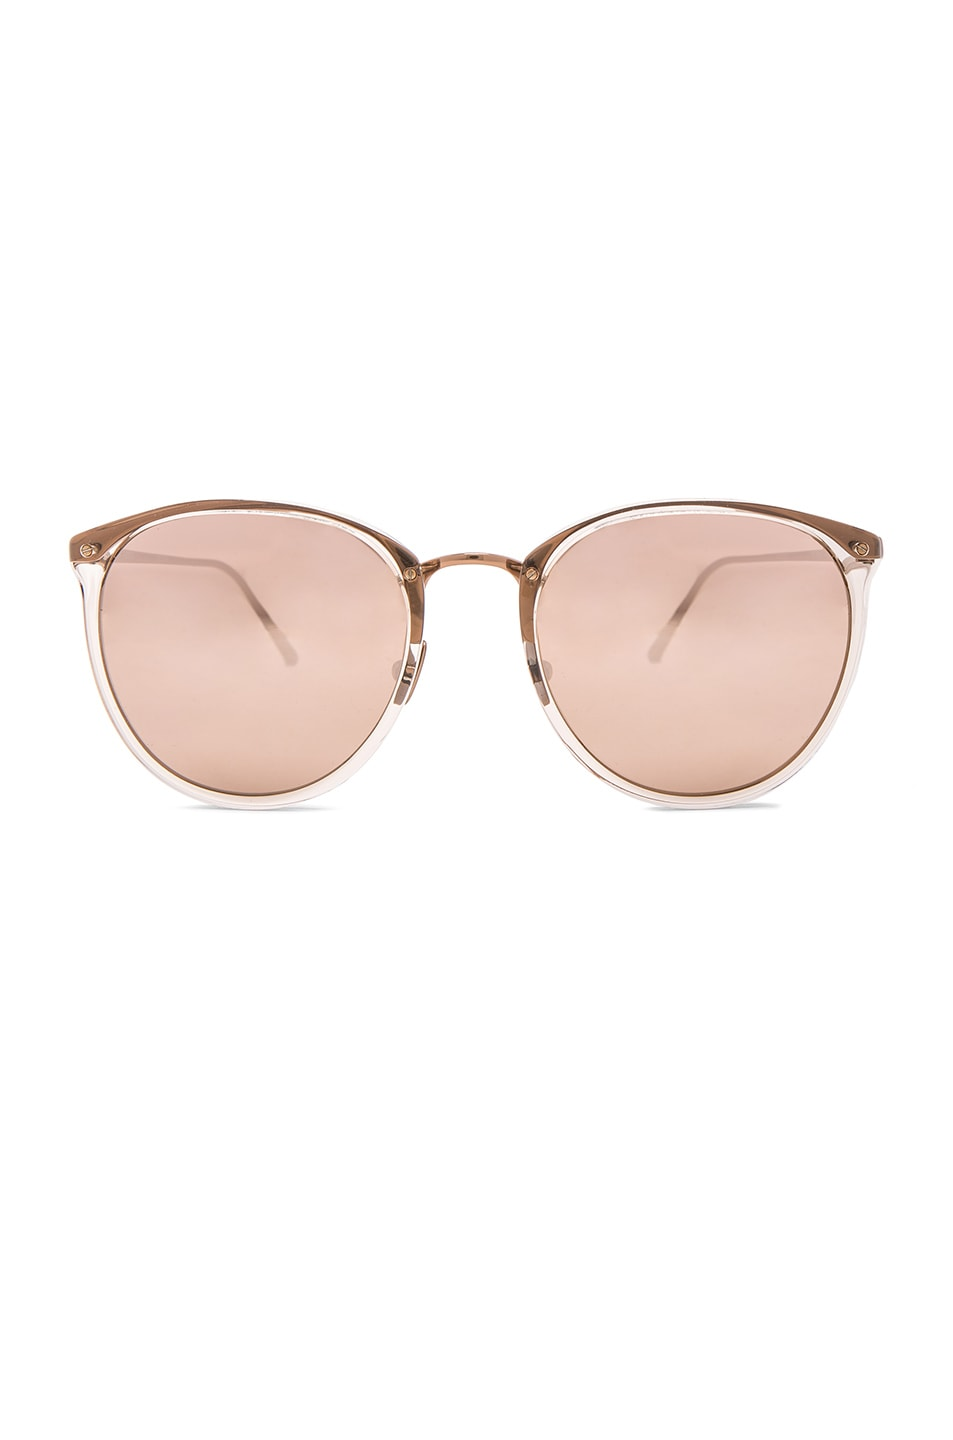 Image 1 of Linda Farrow Rounded Sunglasses in Ash Rose Gold